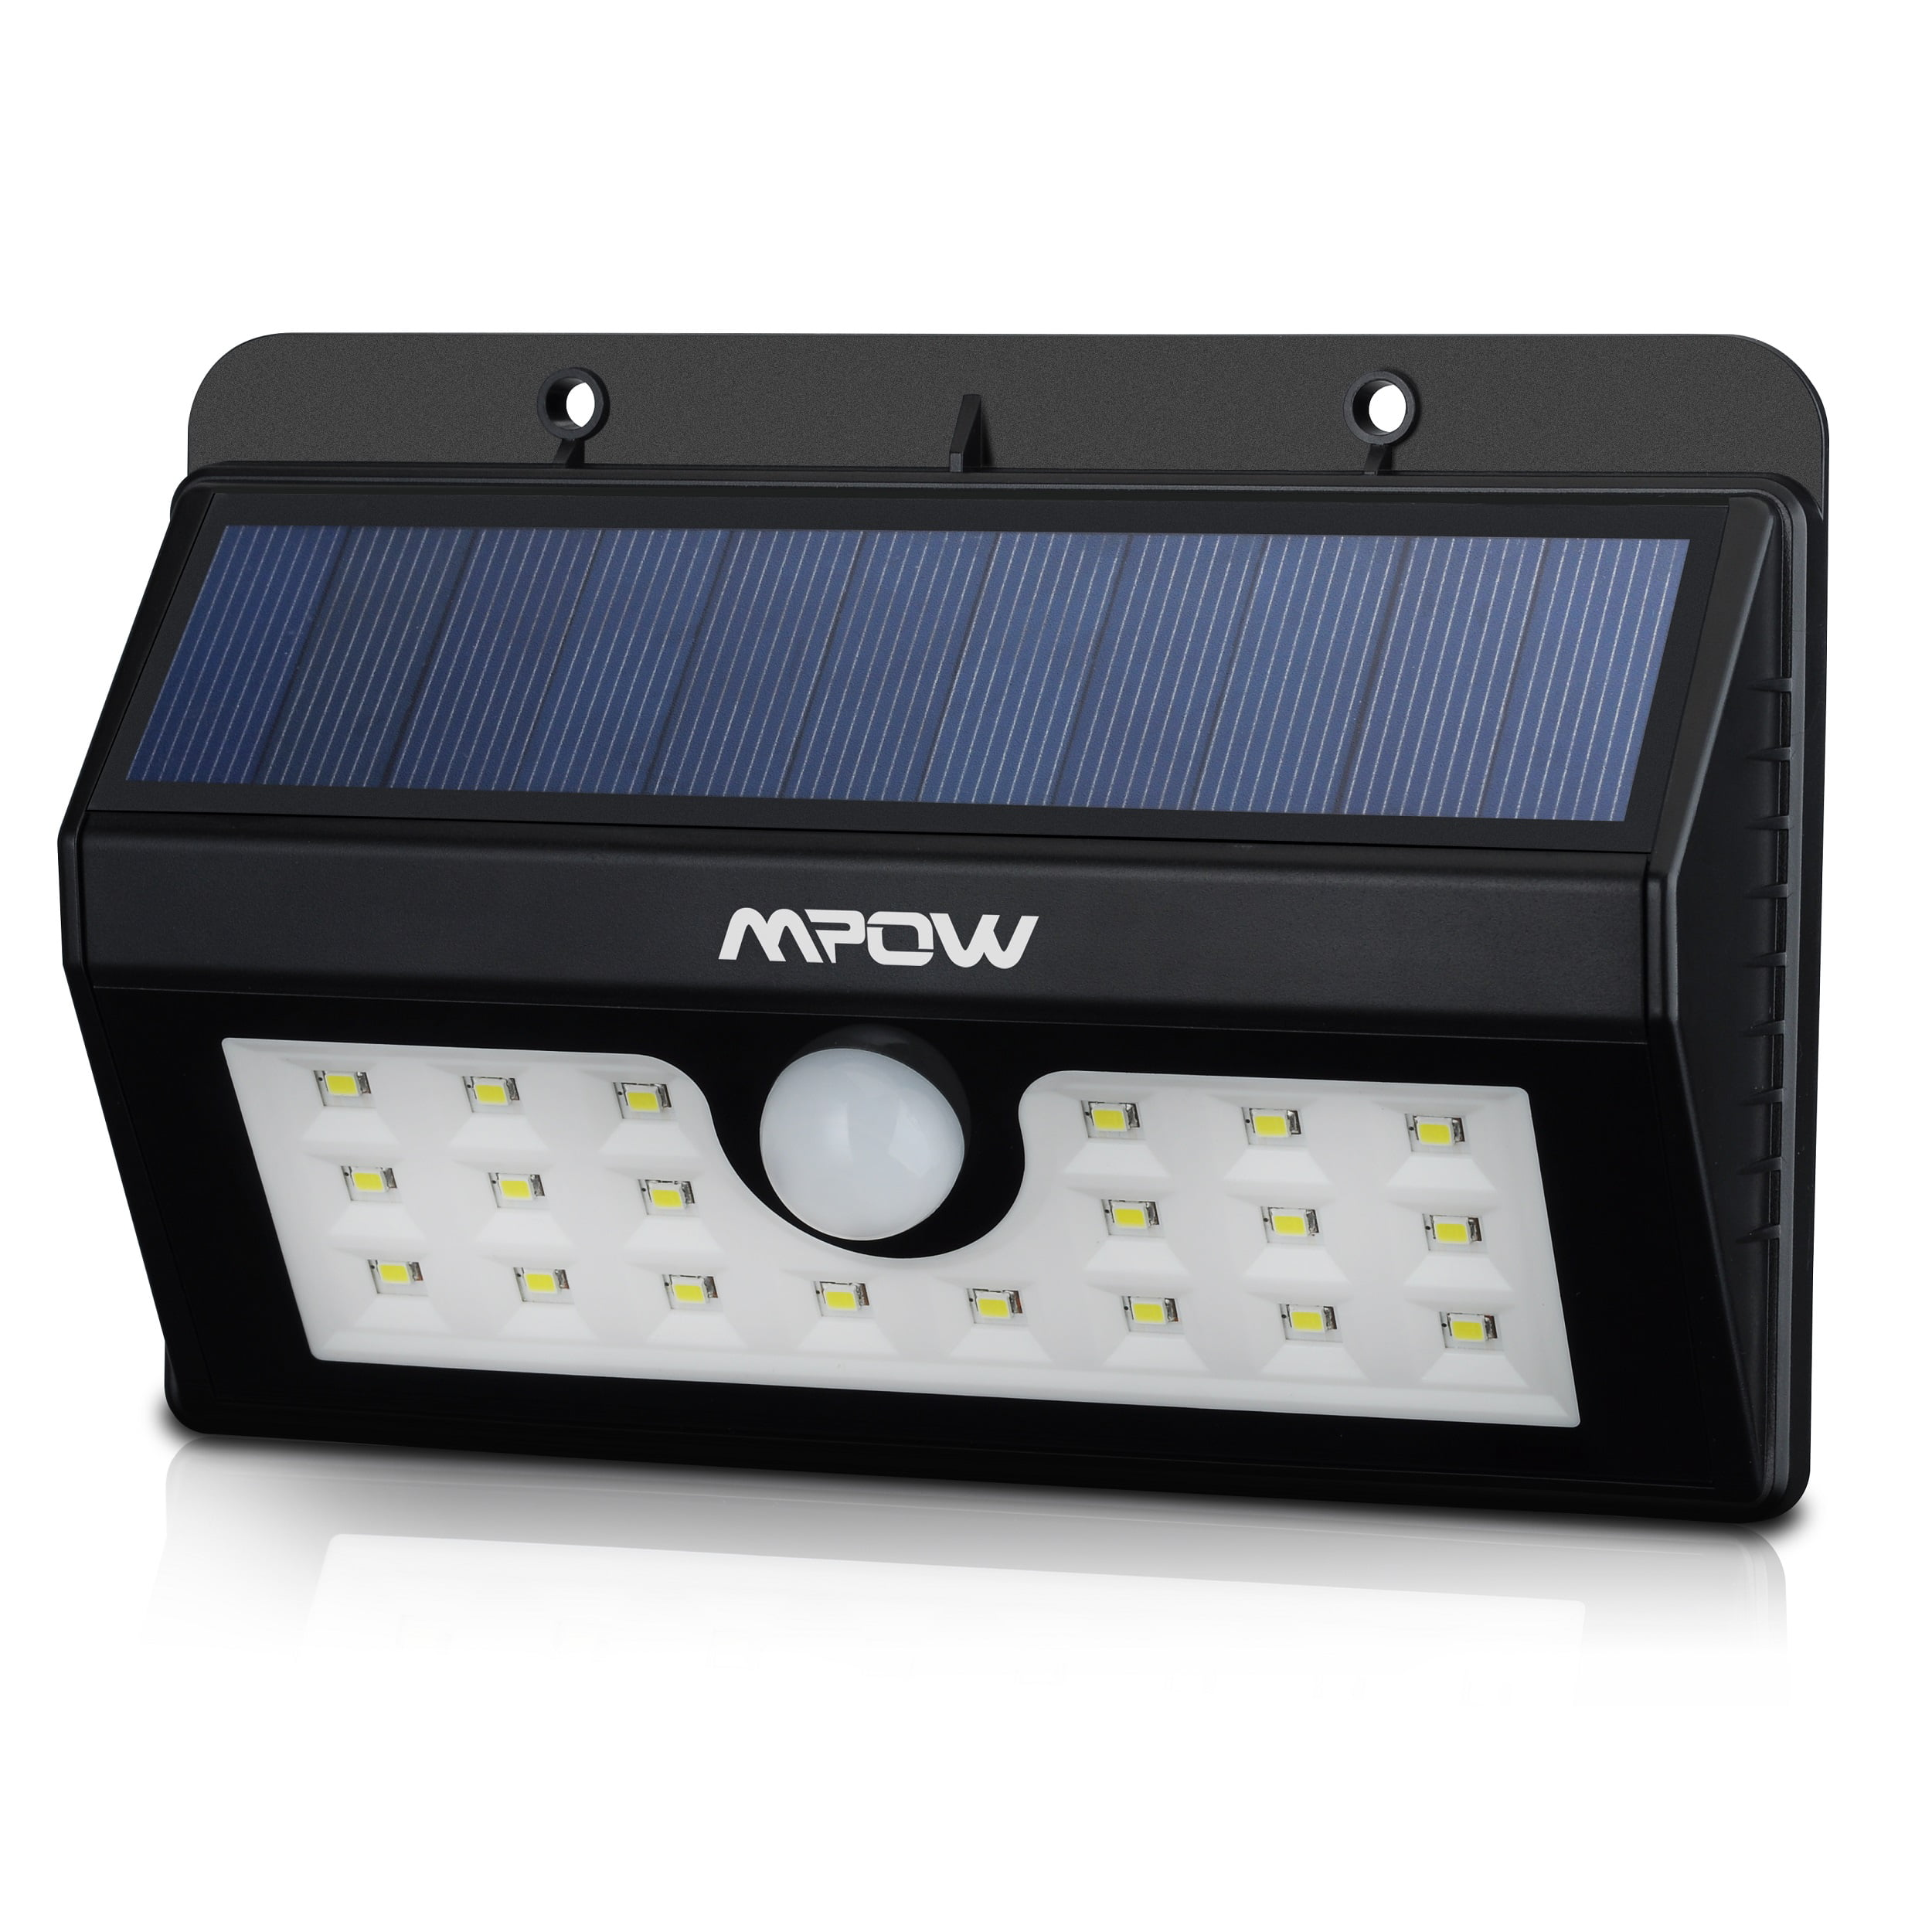 Mpow Super Bright 20 Led Solar Ed Wireless Weatherproof Outdoor Light Motion With 3 Intelligent Modes